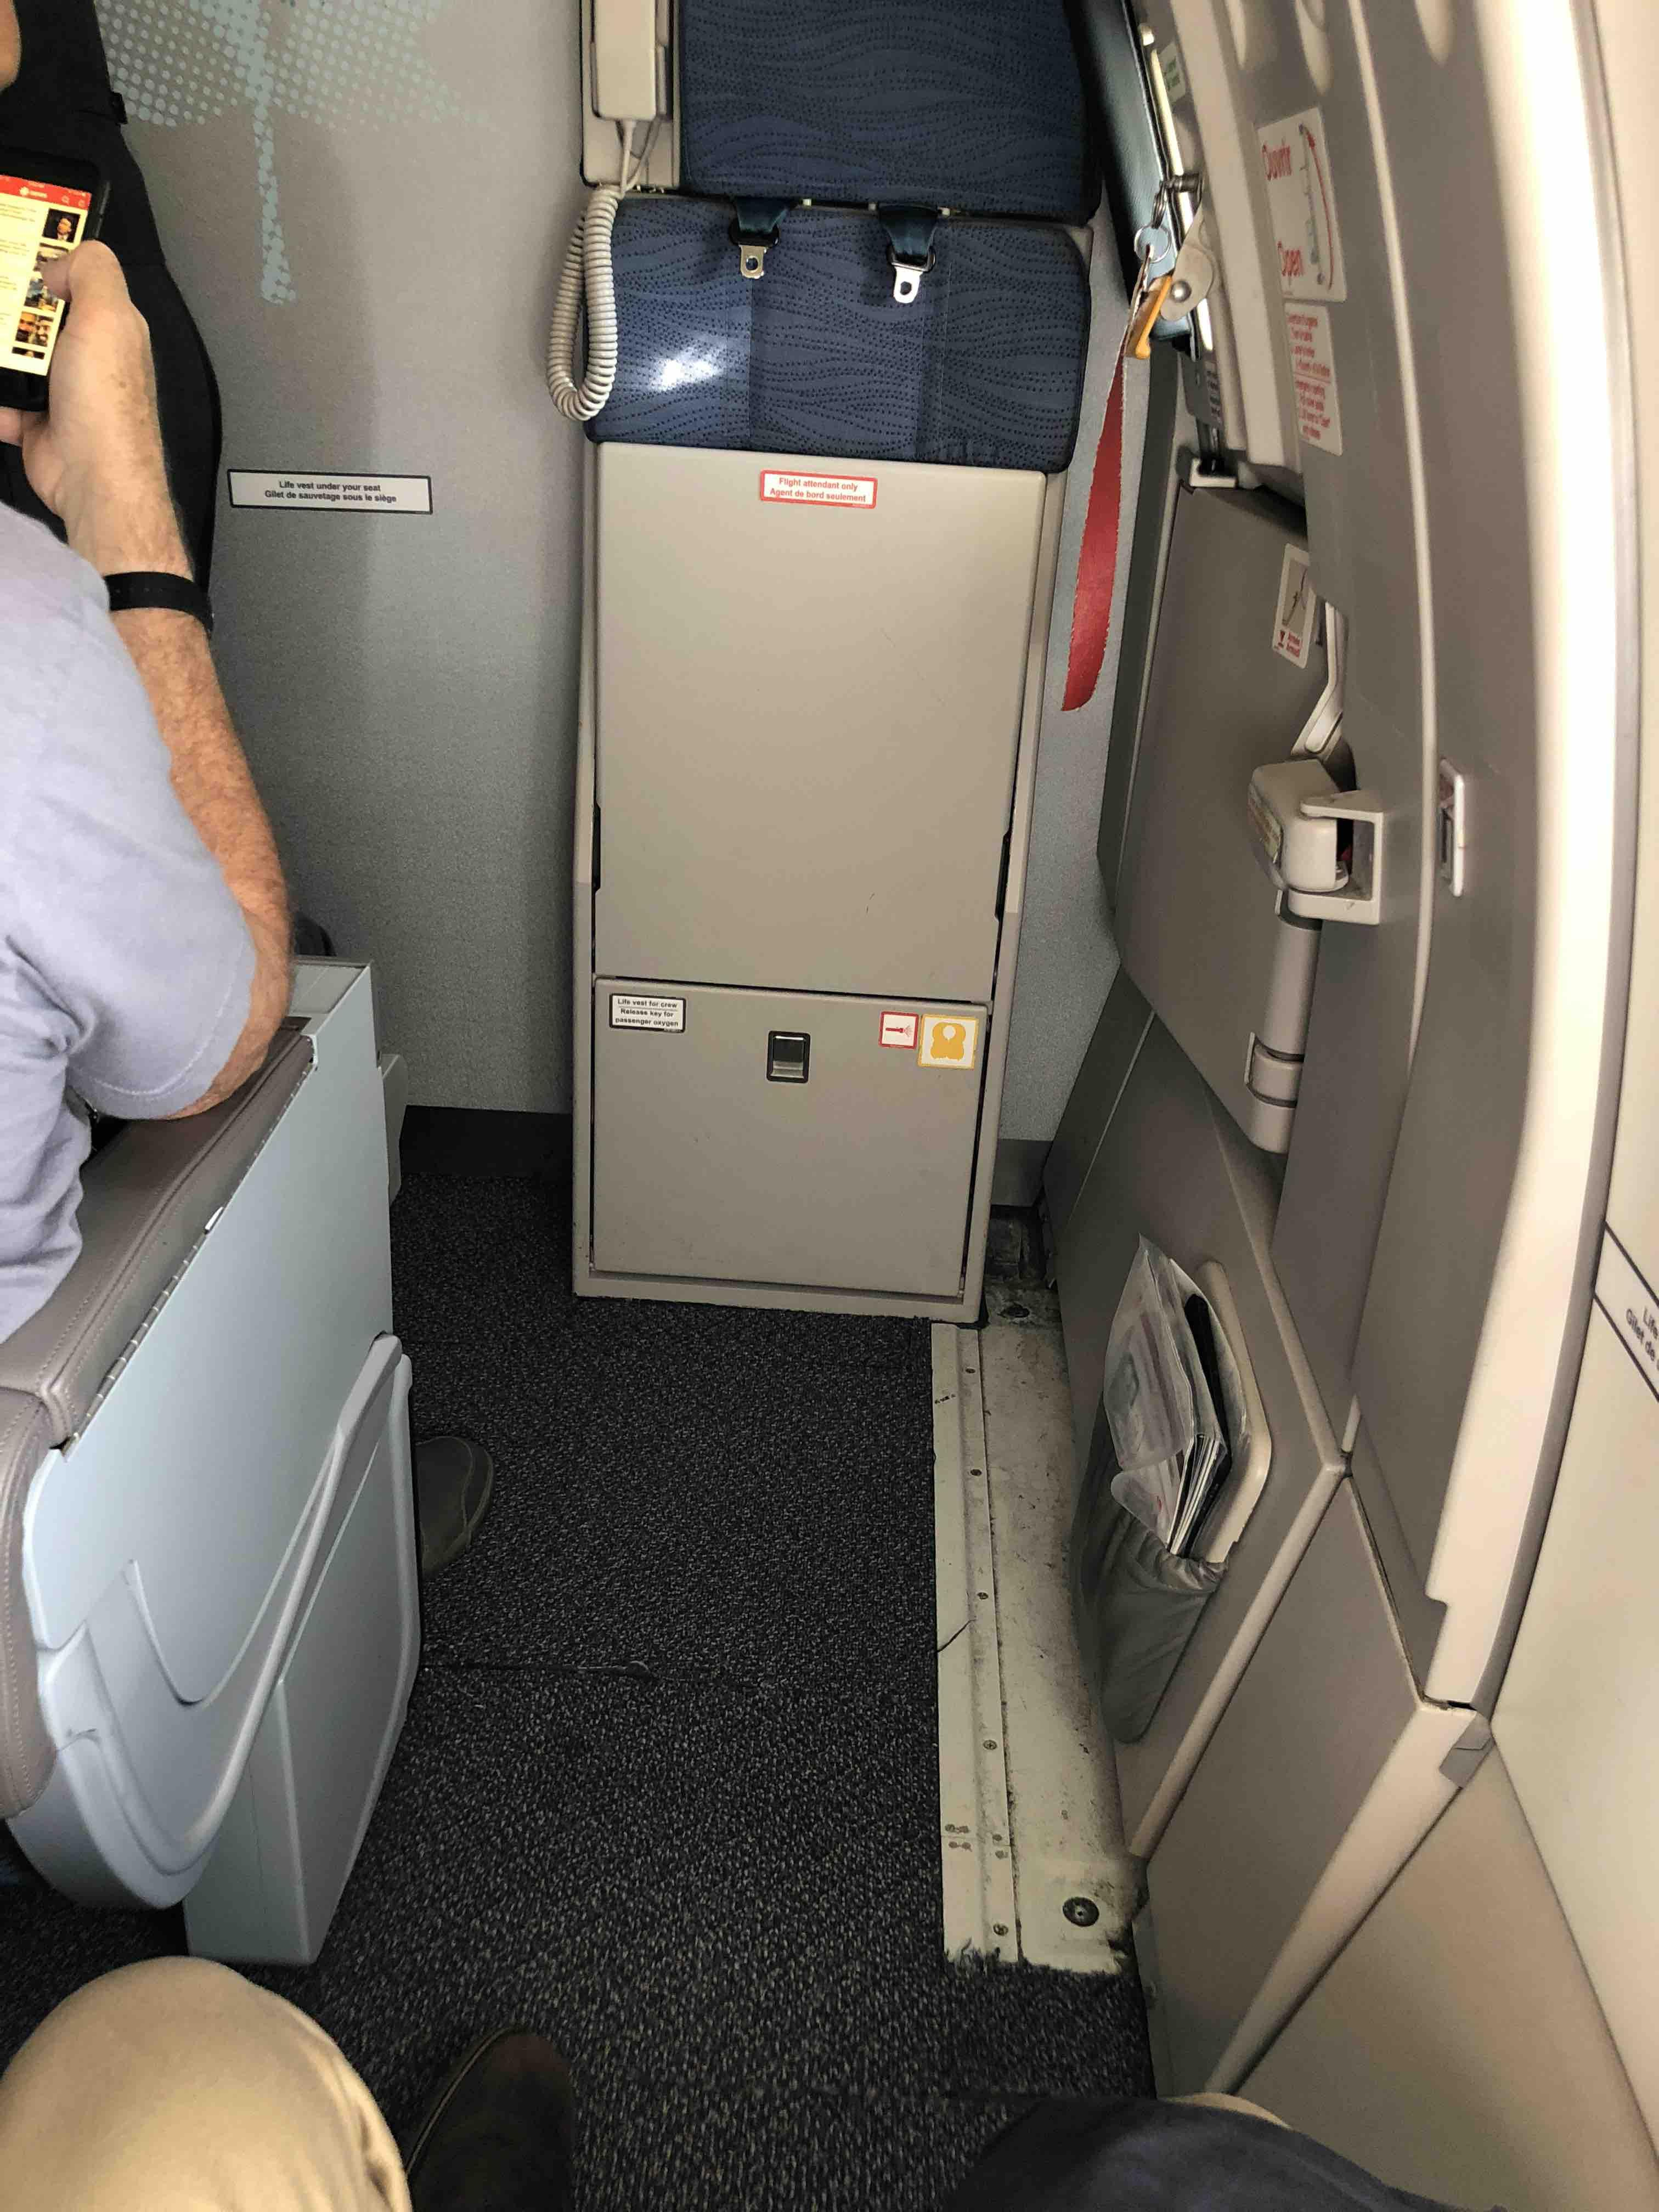 Air Canada Airbus A321 200 exit row seating photos